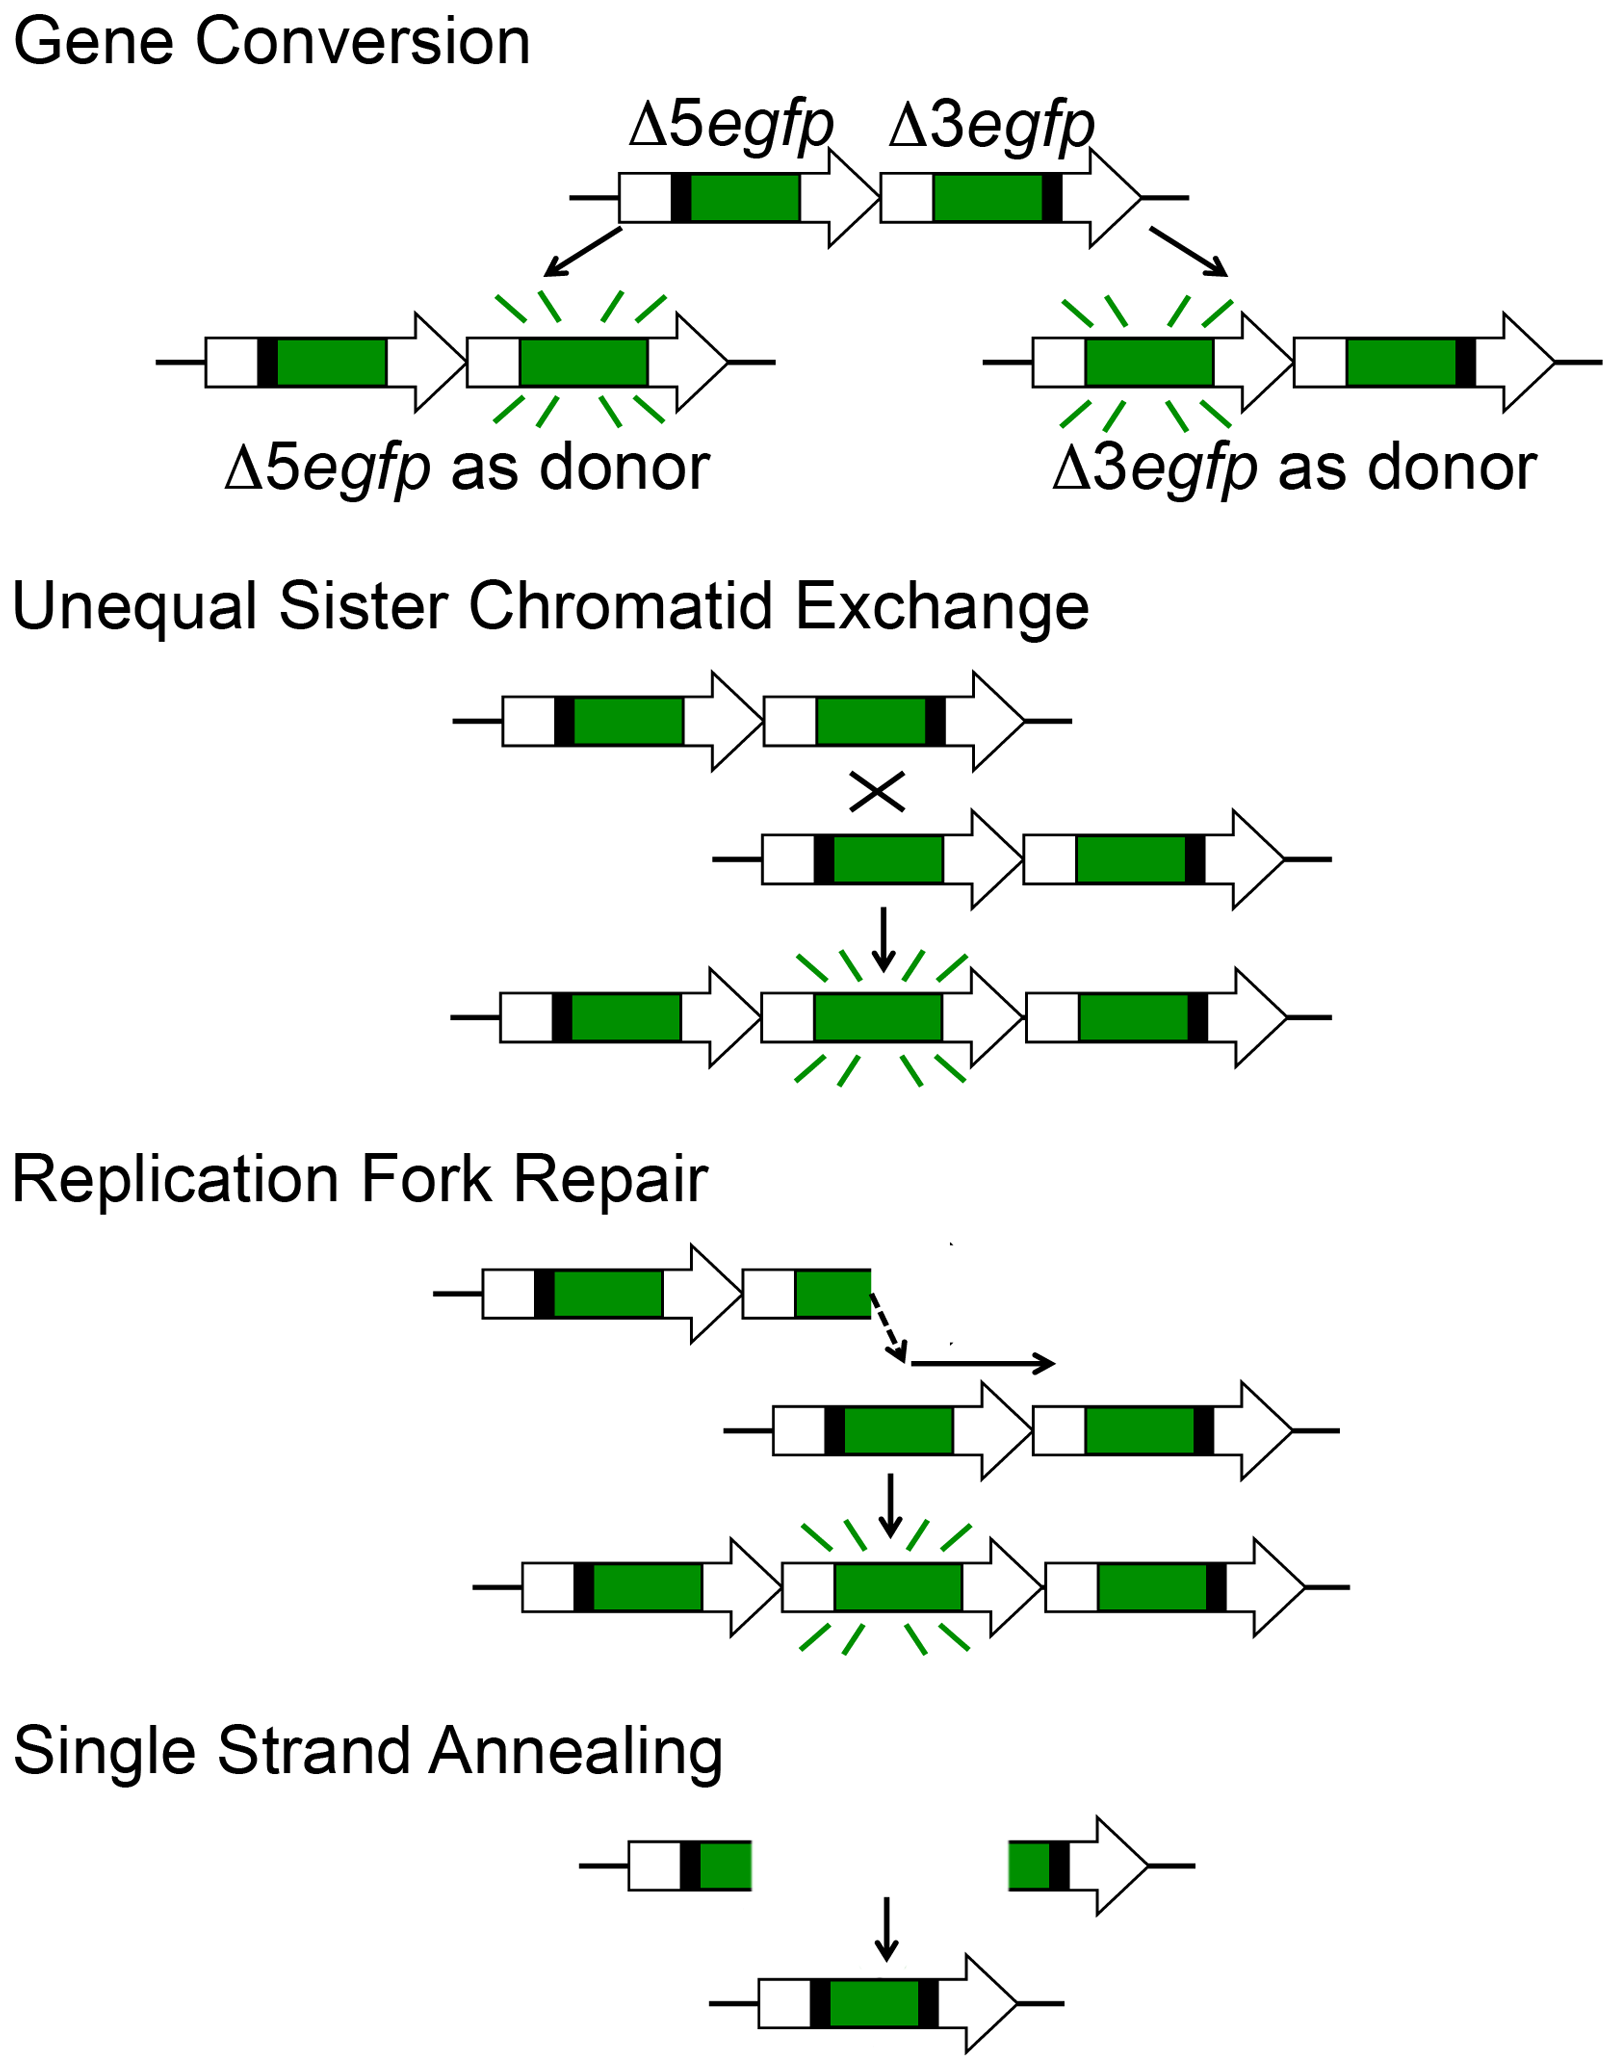 HR at the RaDR-GFP substrate can give rise to fluorescence following gene conversion, sister chromatid exchange, and replication fork repair, but not following SSA.